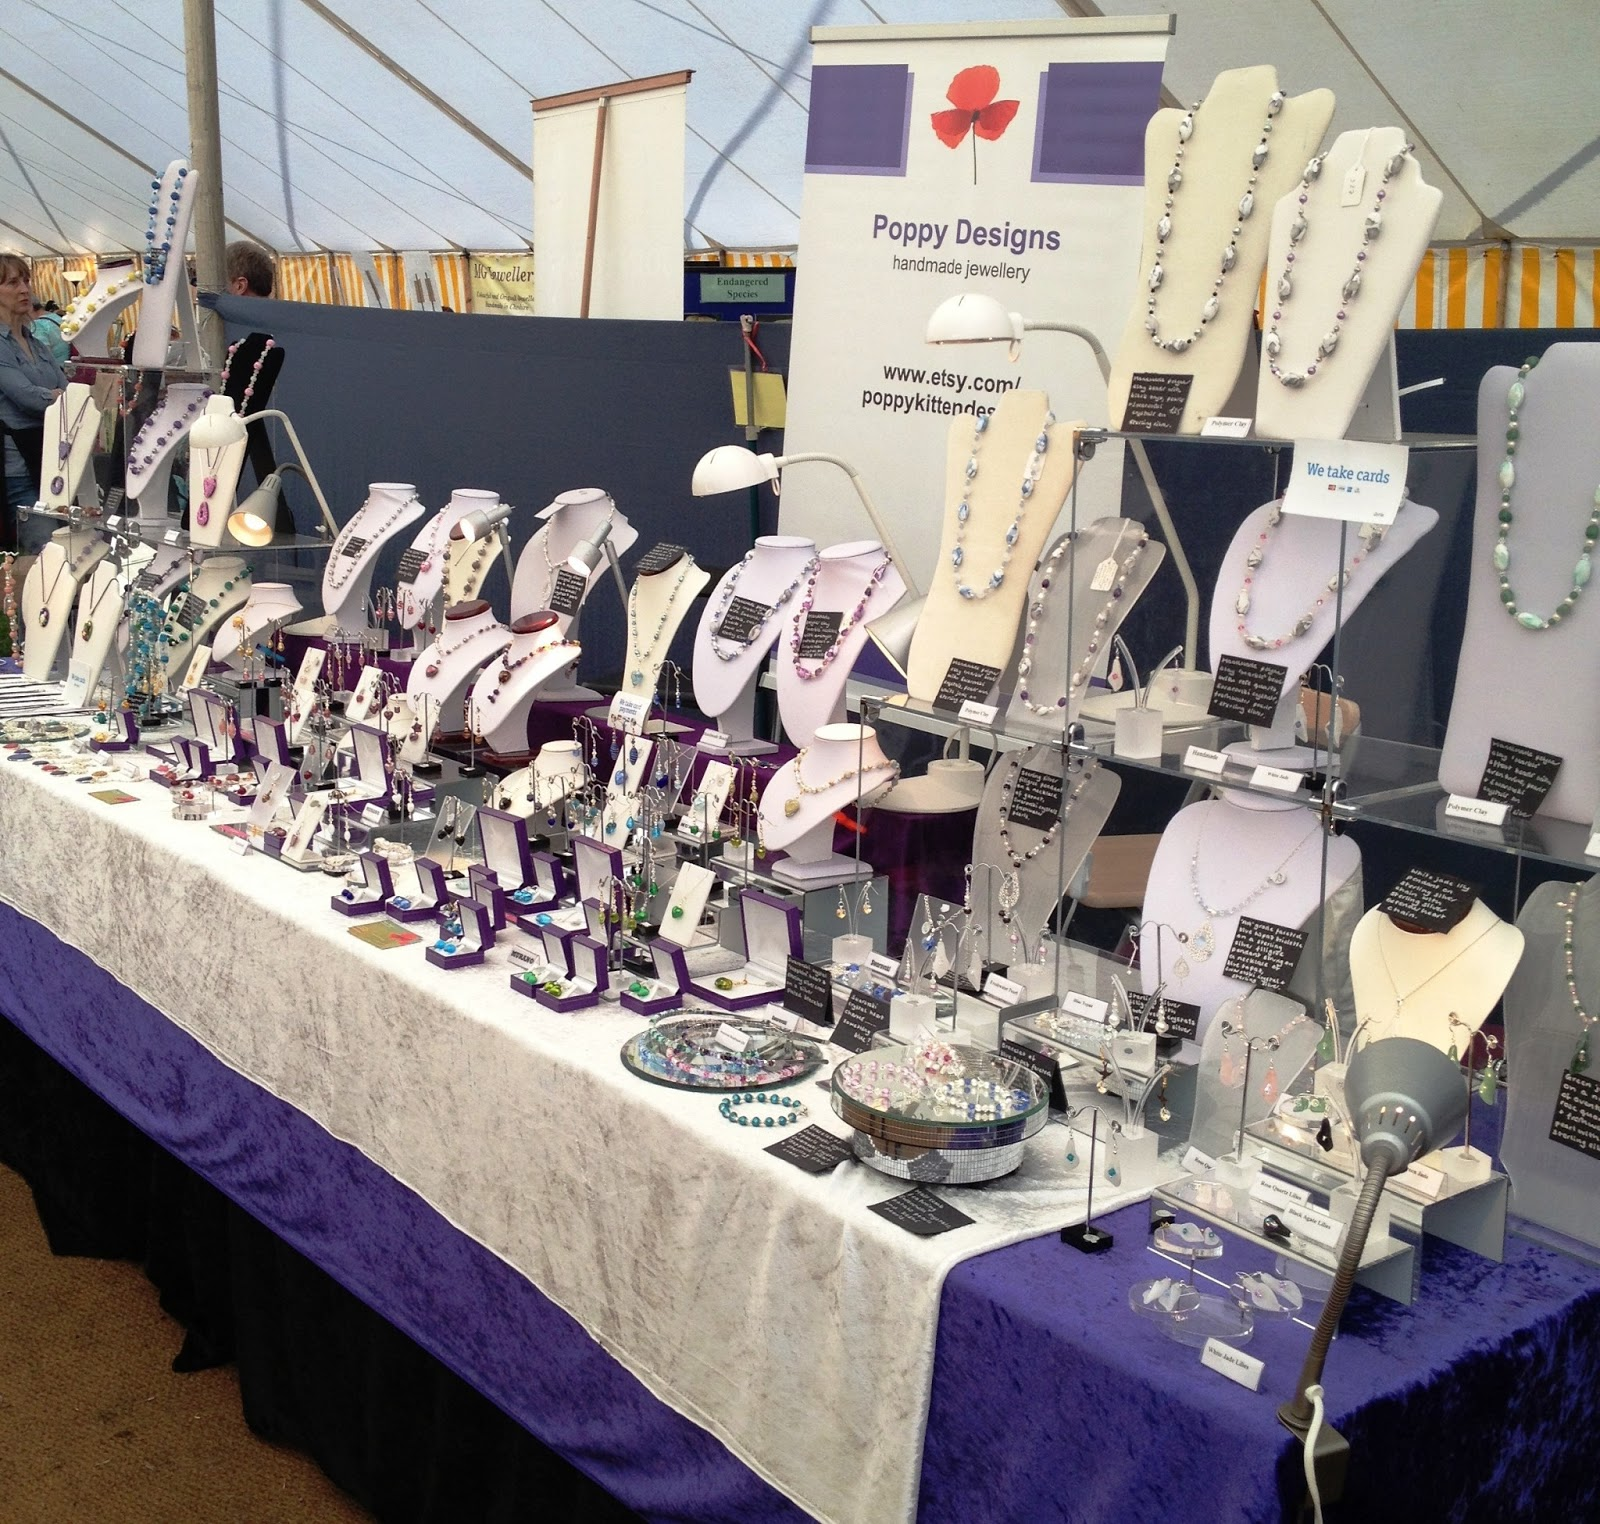 Poppy kitten designs craft fair displays and making for Jewelry displays for craft fairs